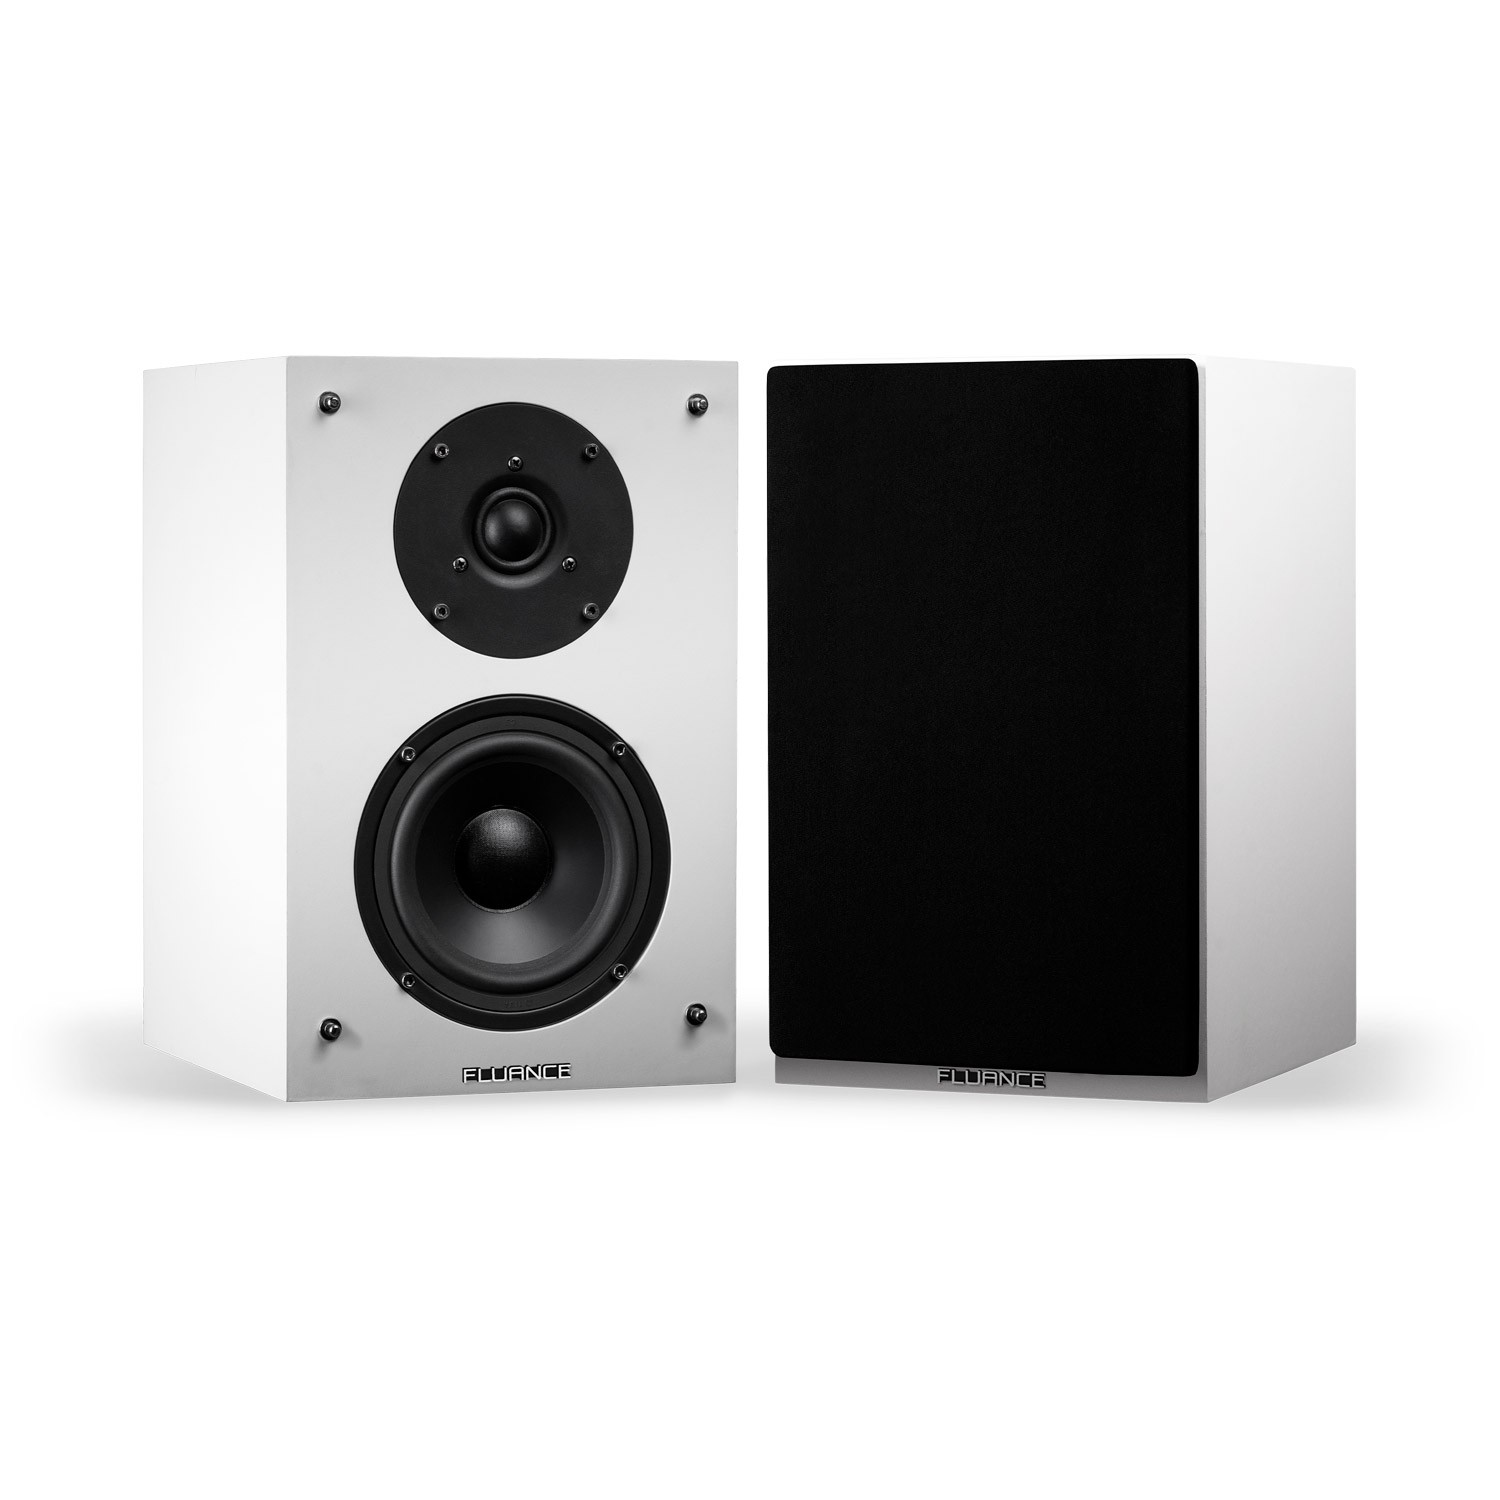 Elite Series High Definition Two-way Bookshelf Loudspeakers - White - Main